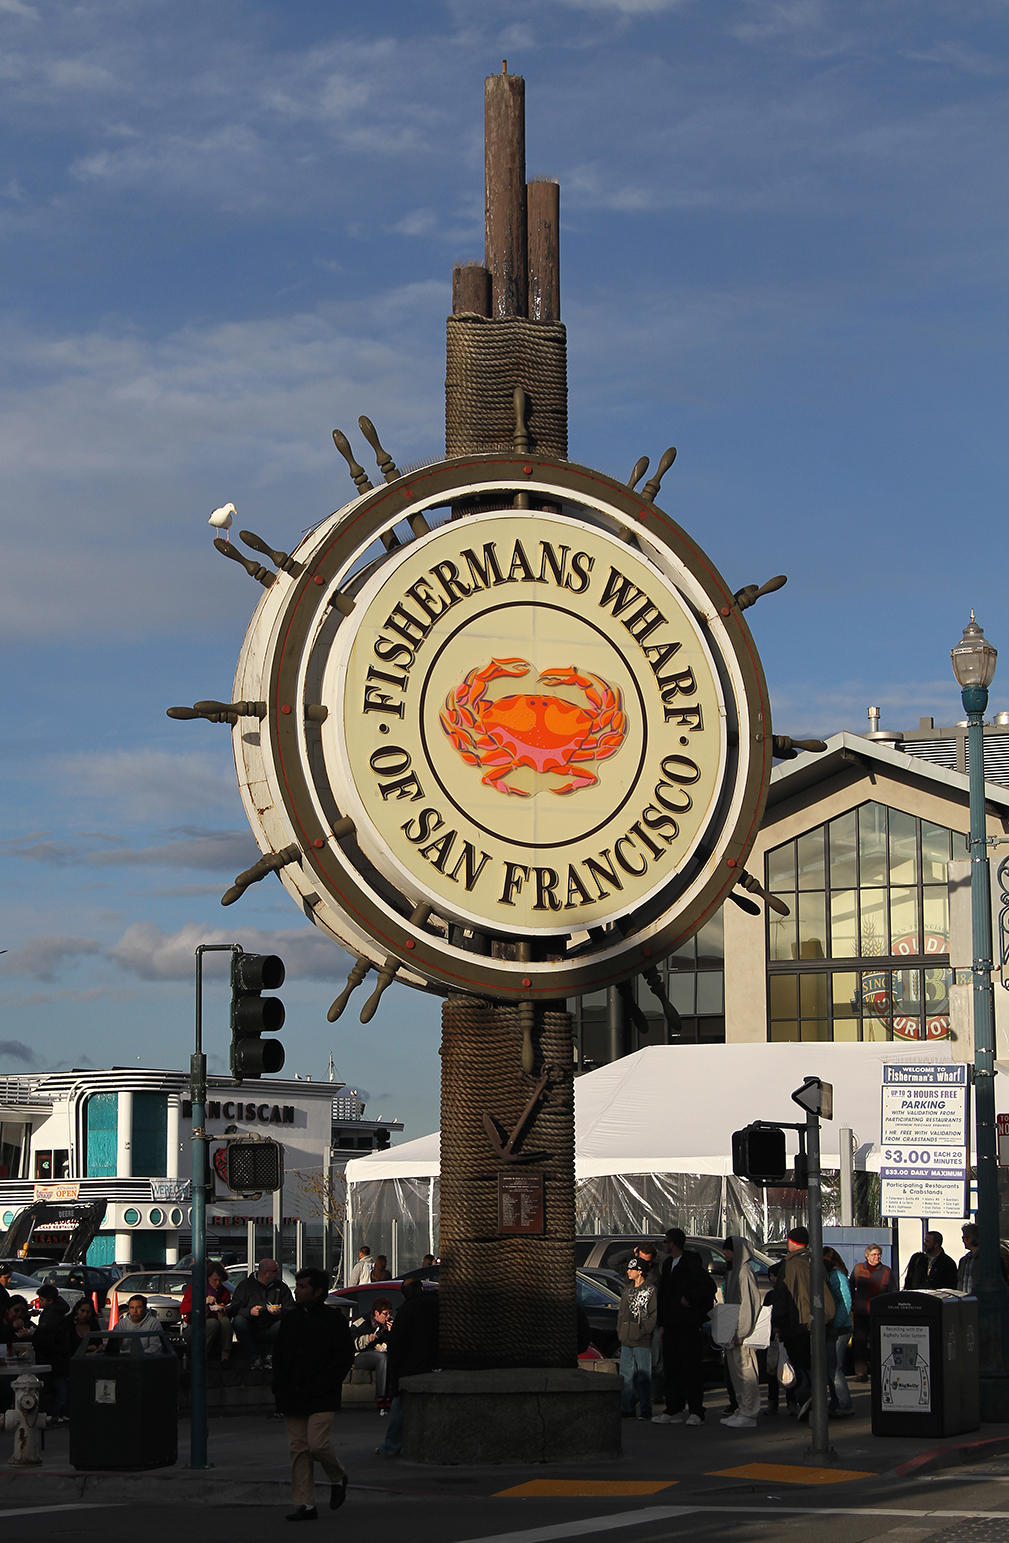 San Francisco Map Store%0A Fisherman u    s Wharf  Website Official Description  San Francisco u    s